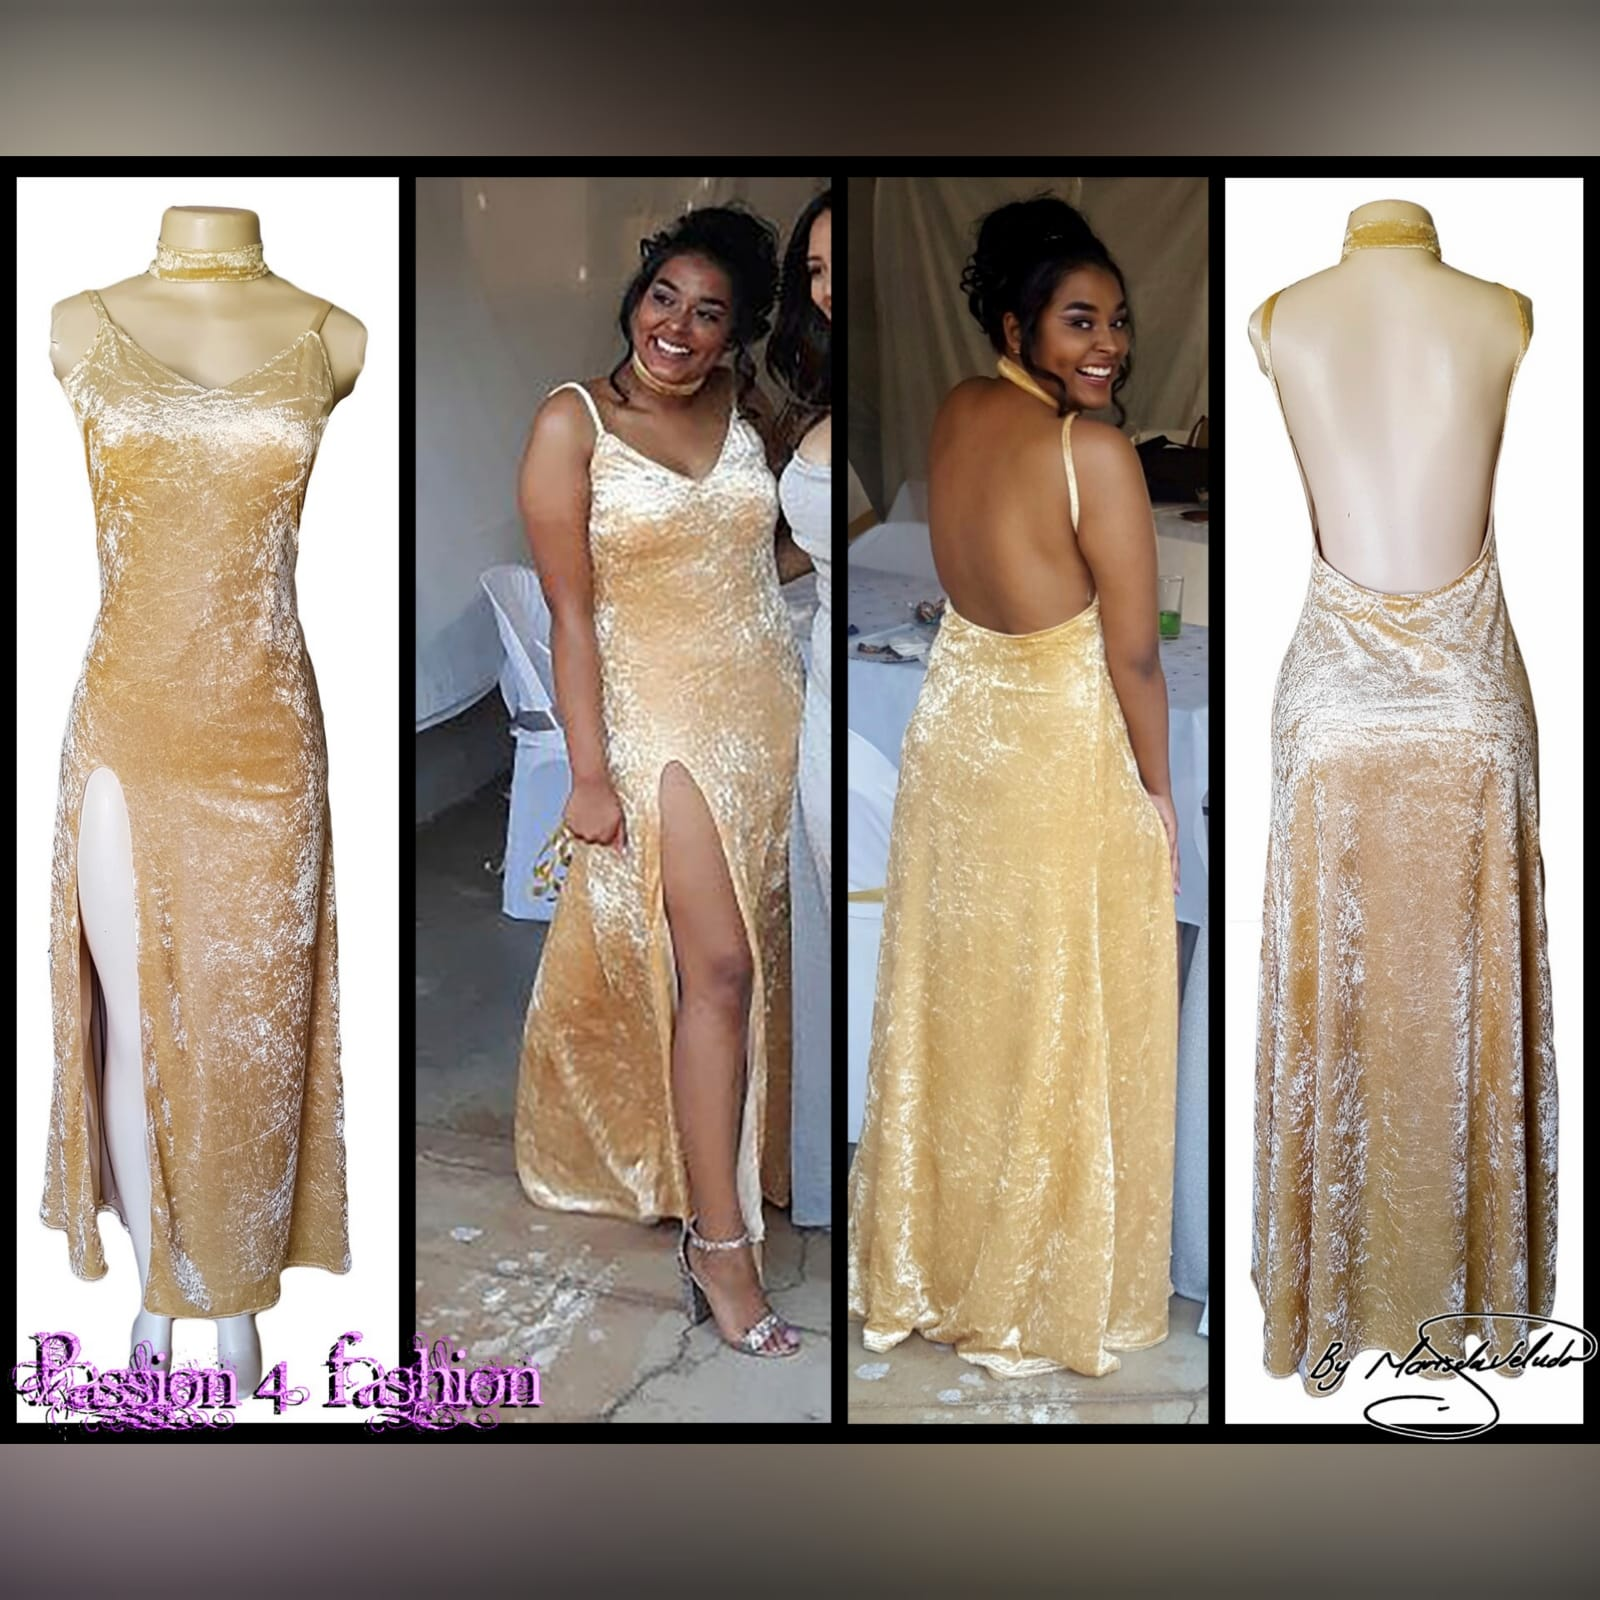 Champagne velvet long prom dress 3 champagne velvet long prom dress with a v neckline, rounded backless design with a high slit and a matching choker.